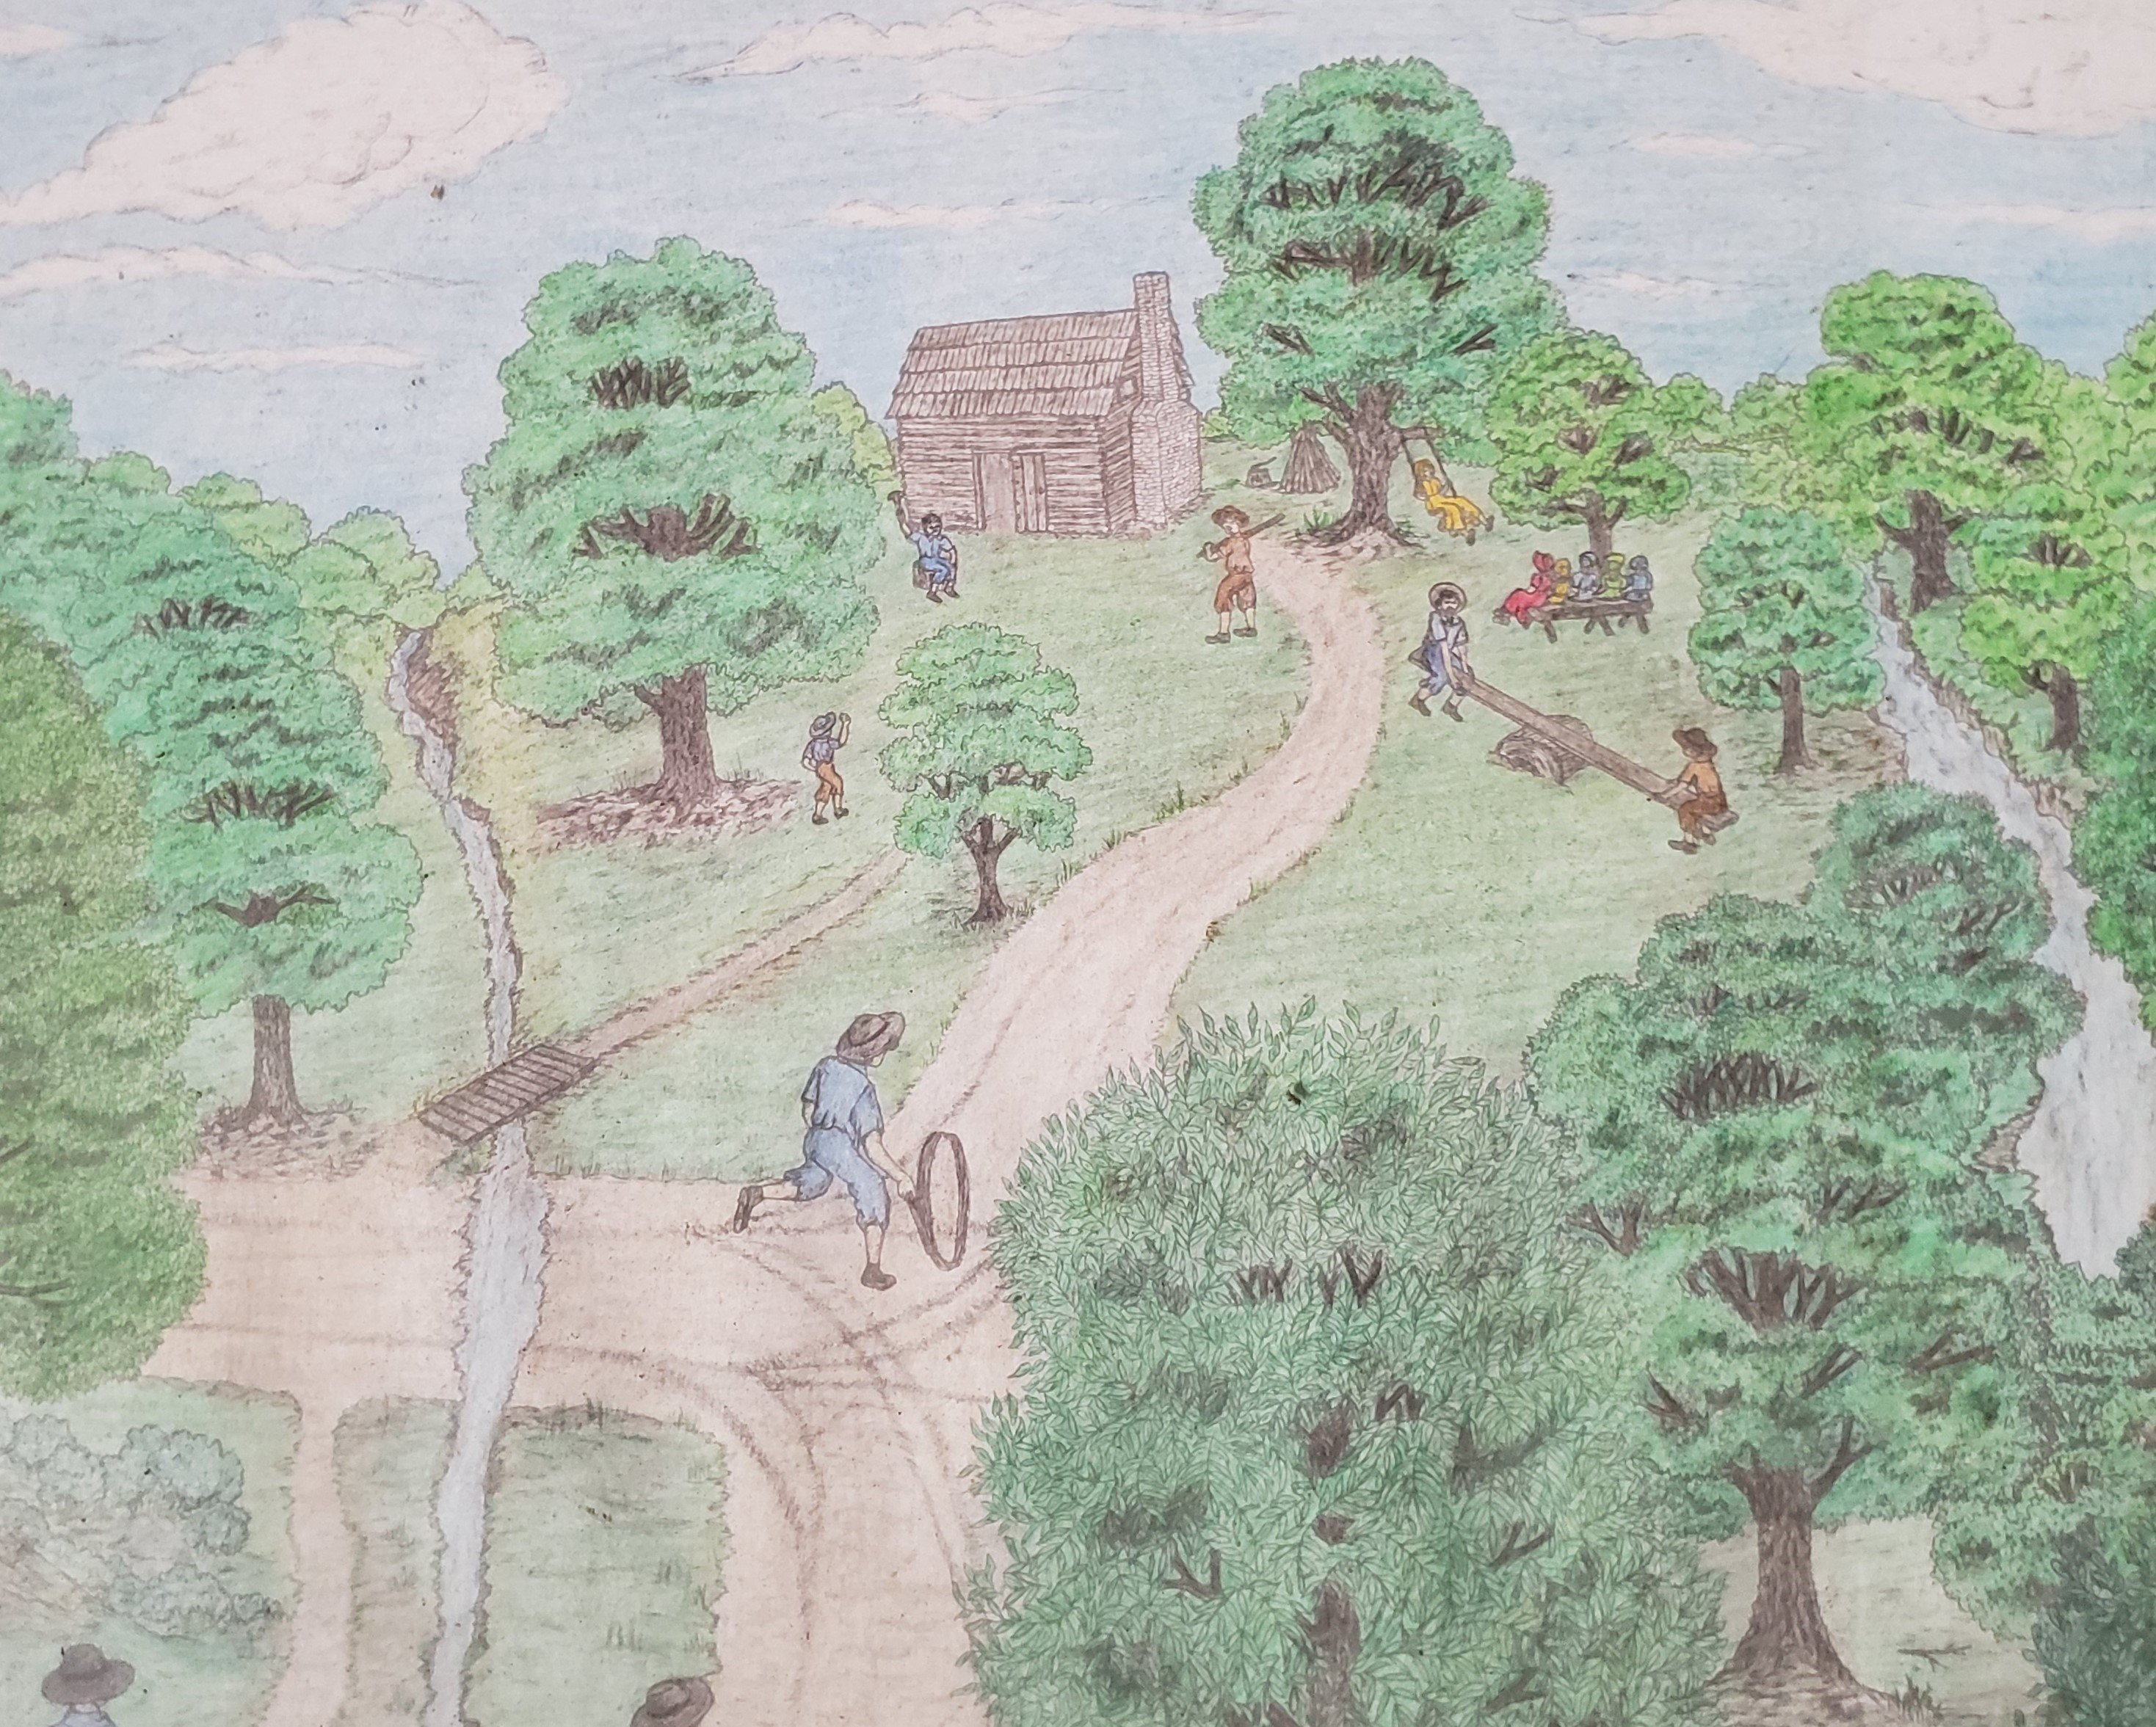 This is a drawing of what the Van Hook Subscription School may have looked like in the 1800s at its original location on Paynes Tavern Road in the Flat River area of Person County, North Carolina.